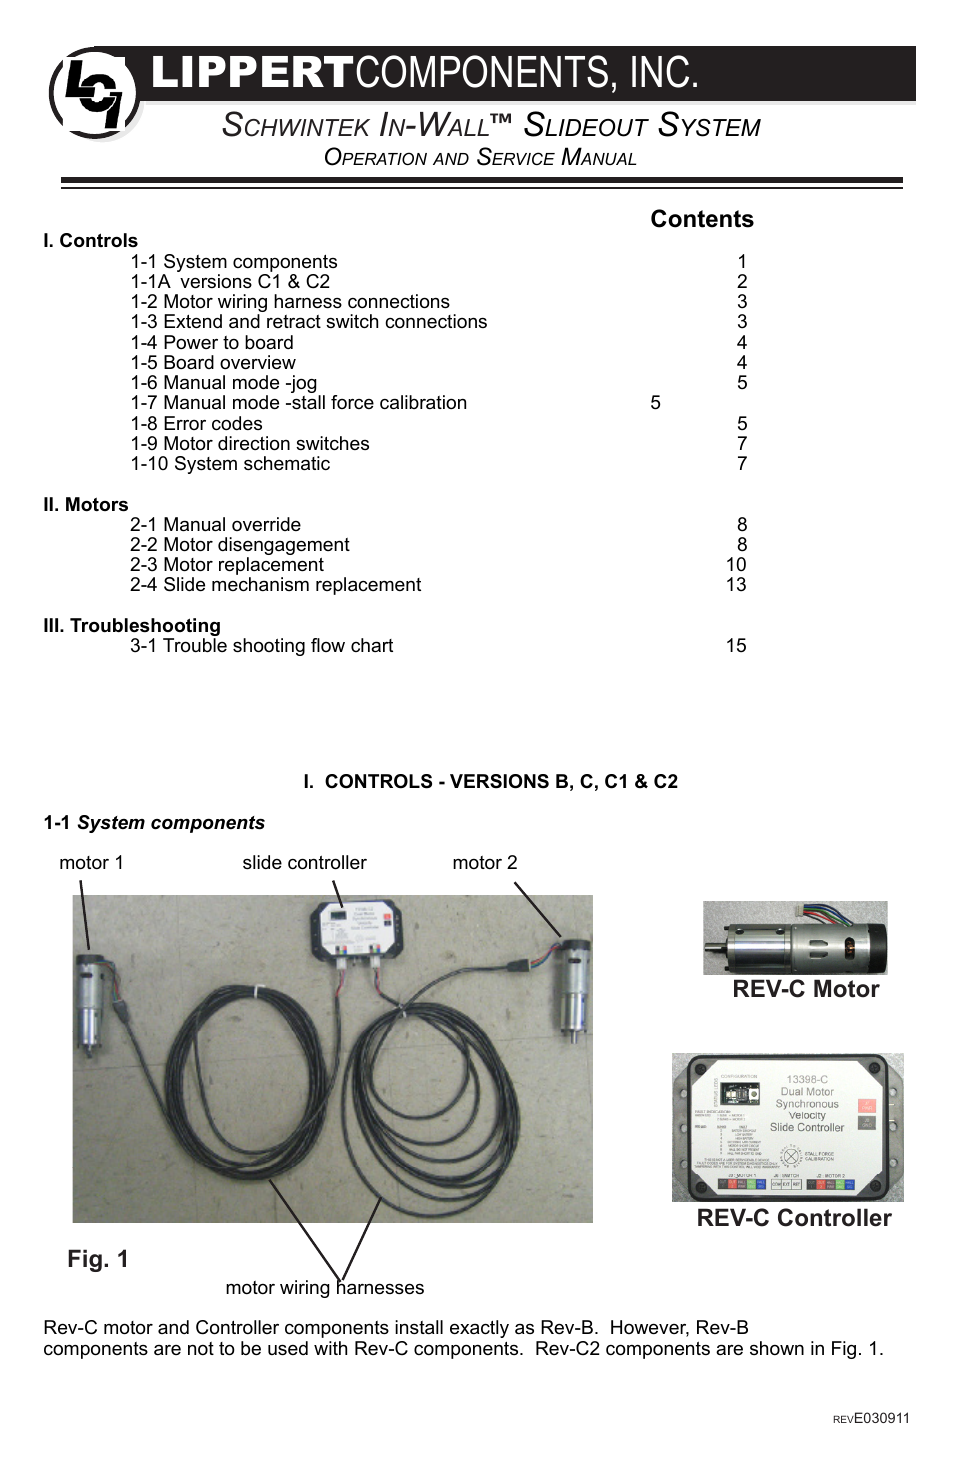 Lippert Components In Wall Slide Out System User Manual 16 Pages C2 Wiring Schematic